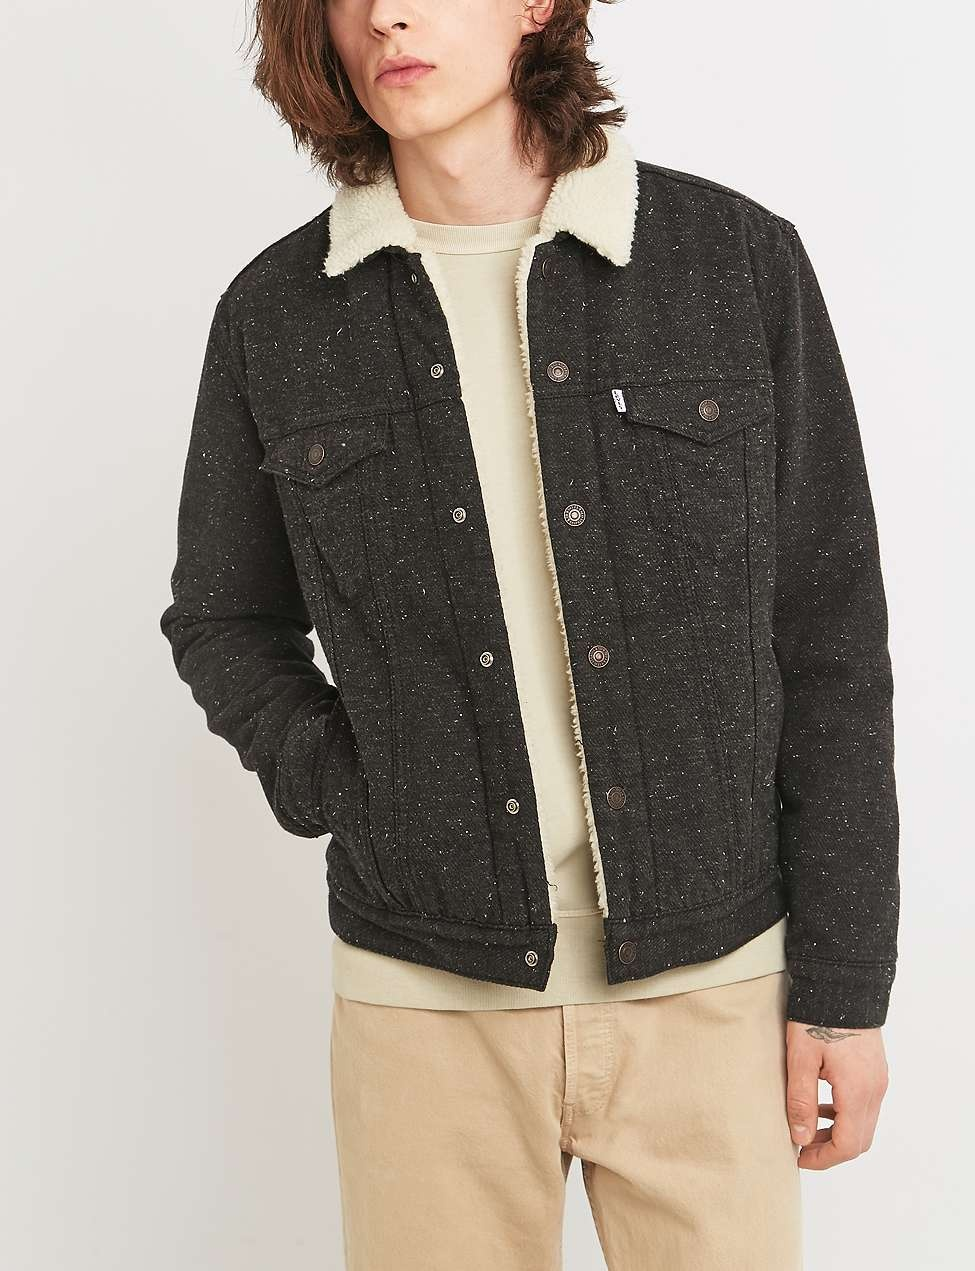 336f1c74 Type 3 Black Nep Sherpa Jacket by Levi's — Thread